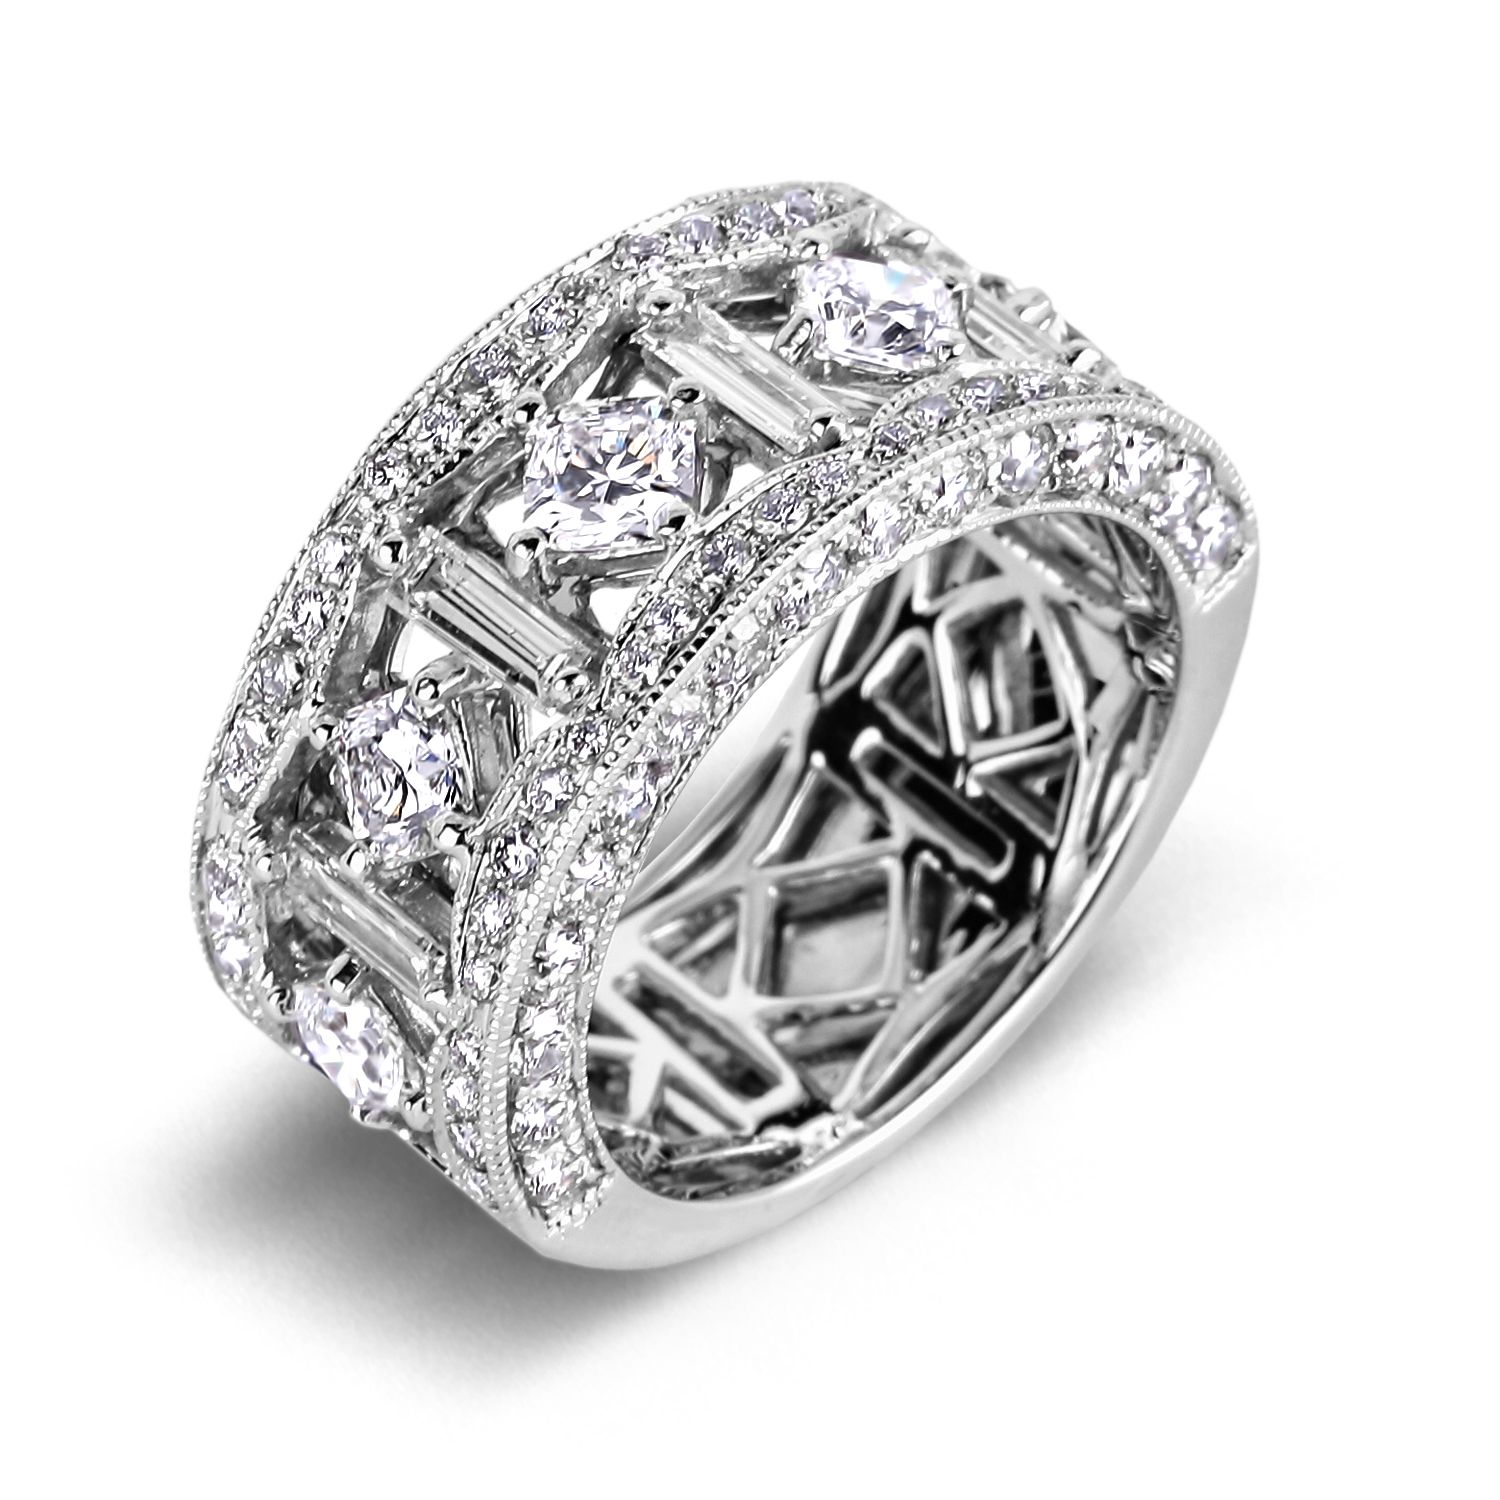 wedding anniversary rings Diamond Anniversary Rings SGR Rings out of price range but like the over